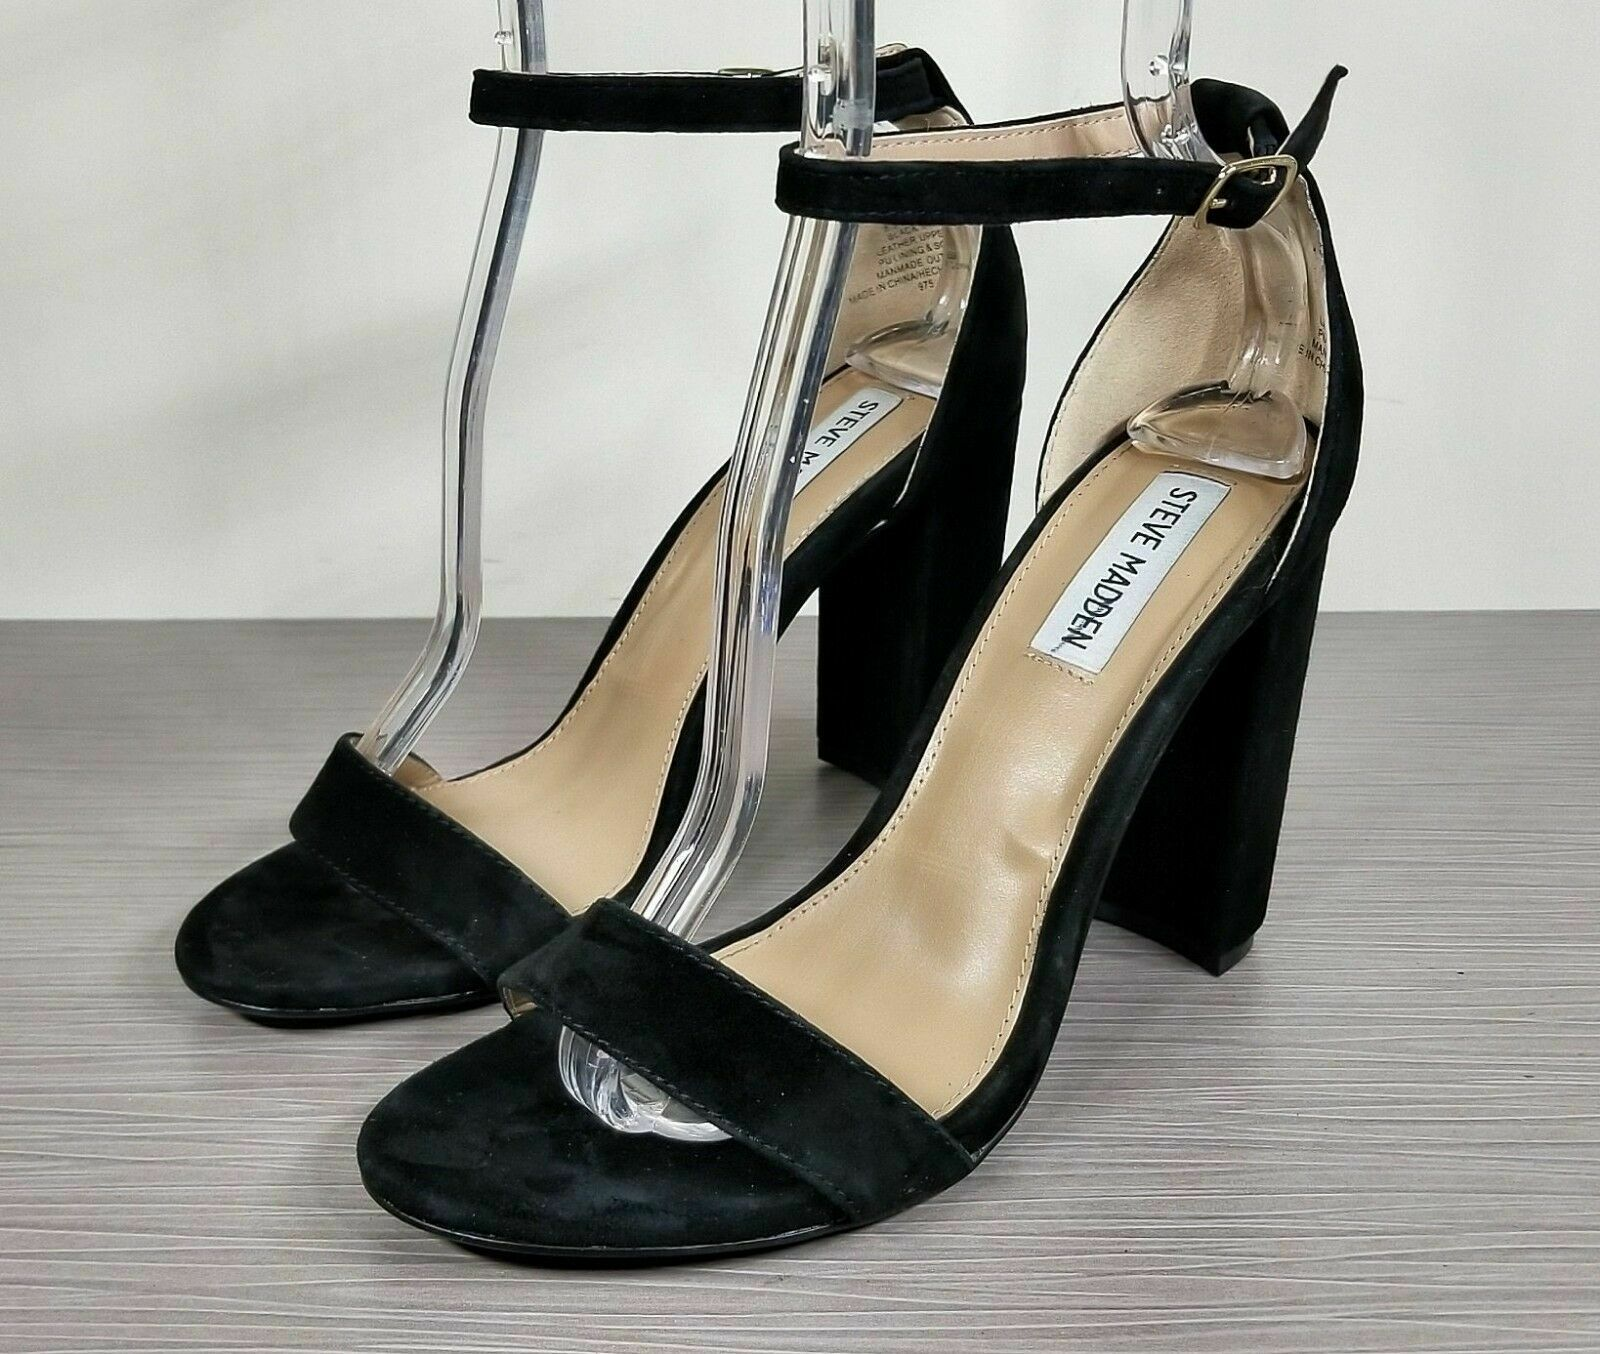 Primary image for Steve Madden Carrson Sandal, Black Suede, Womens Various Sizes